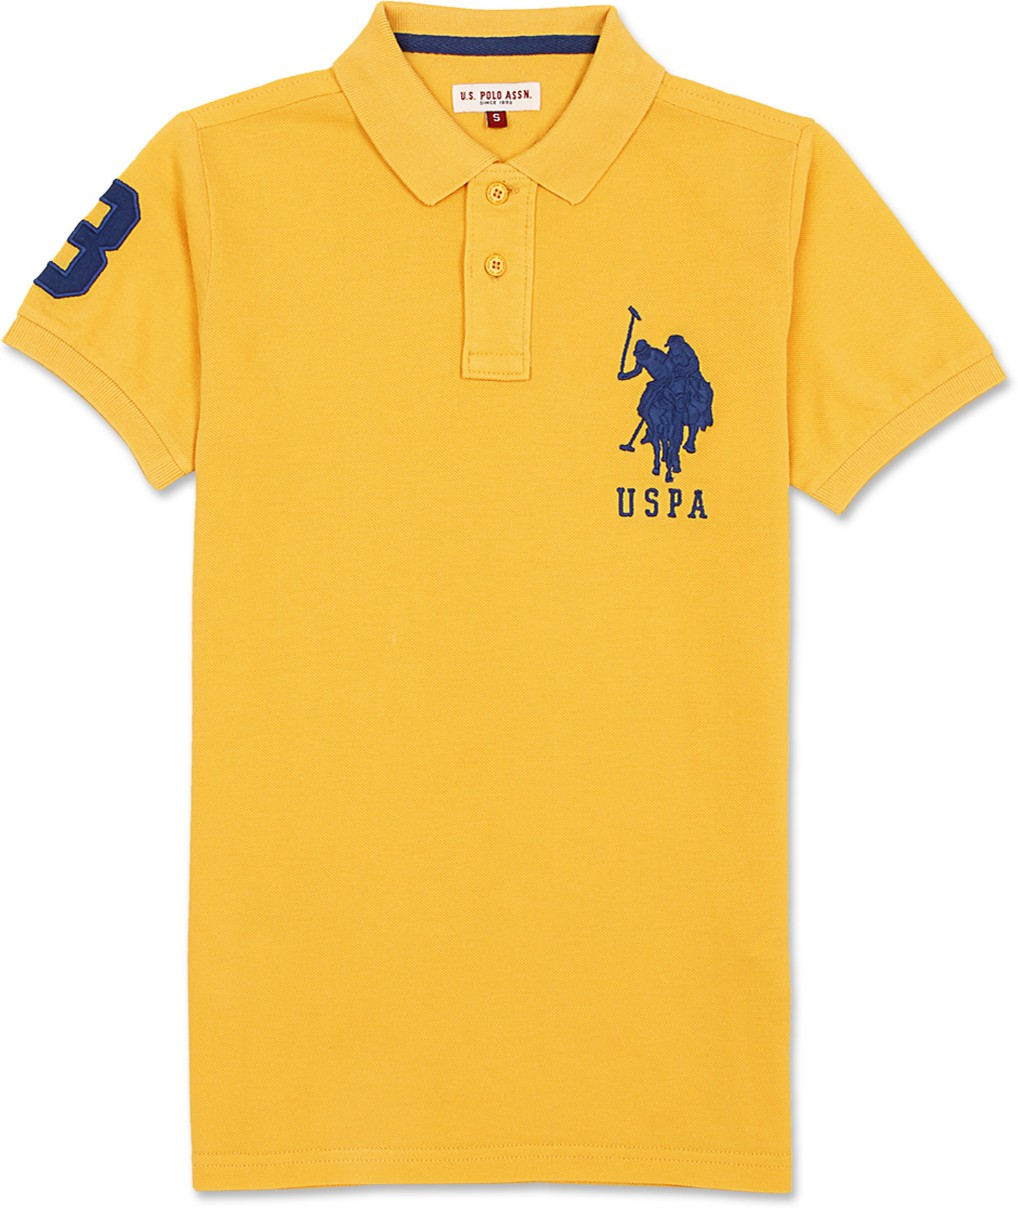 2017 04 16 sold out for Polo t shirts india